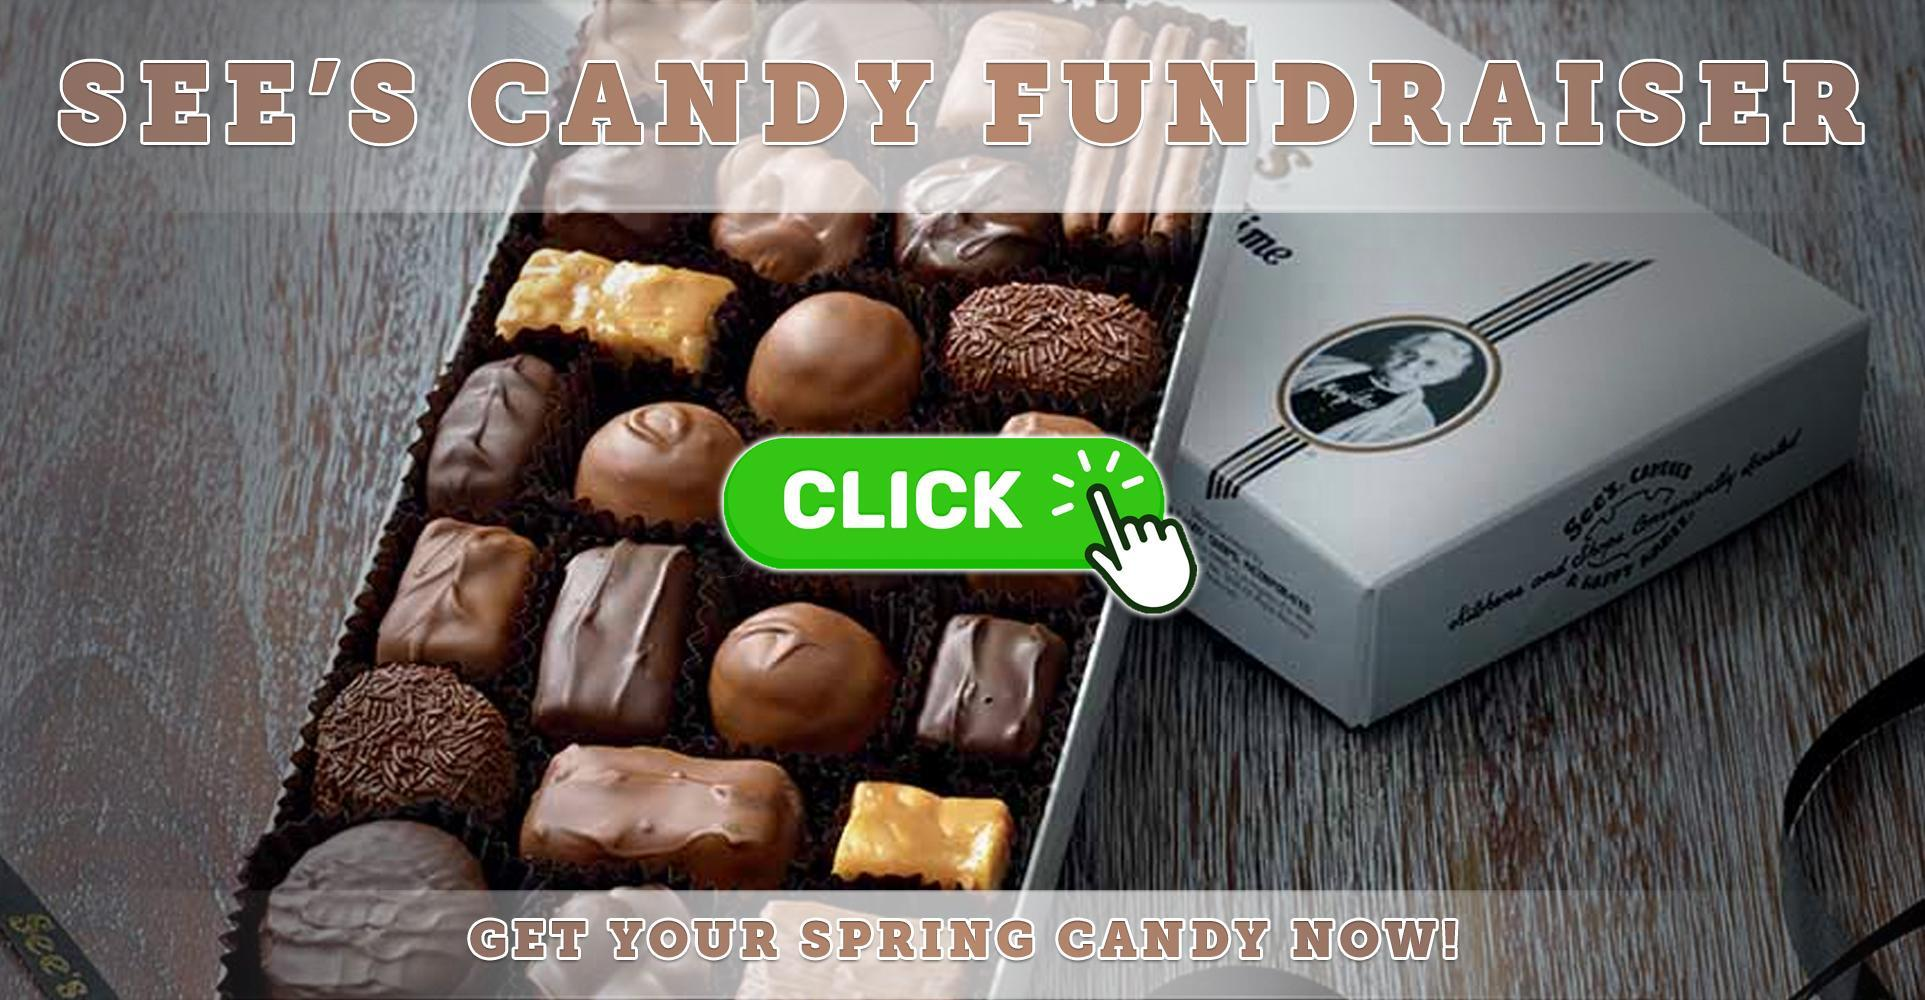 See's Candy Fundraiser: Order Now - March 19!